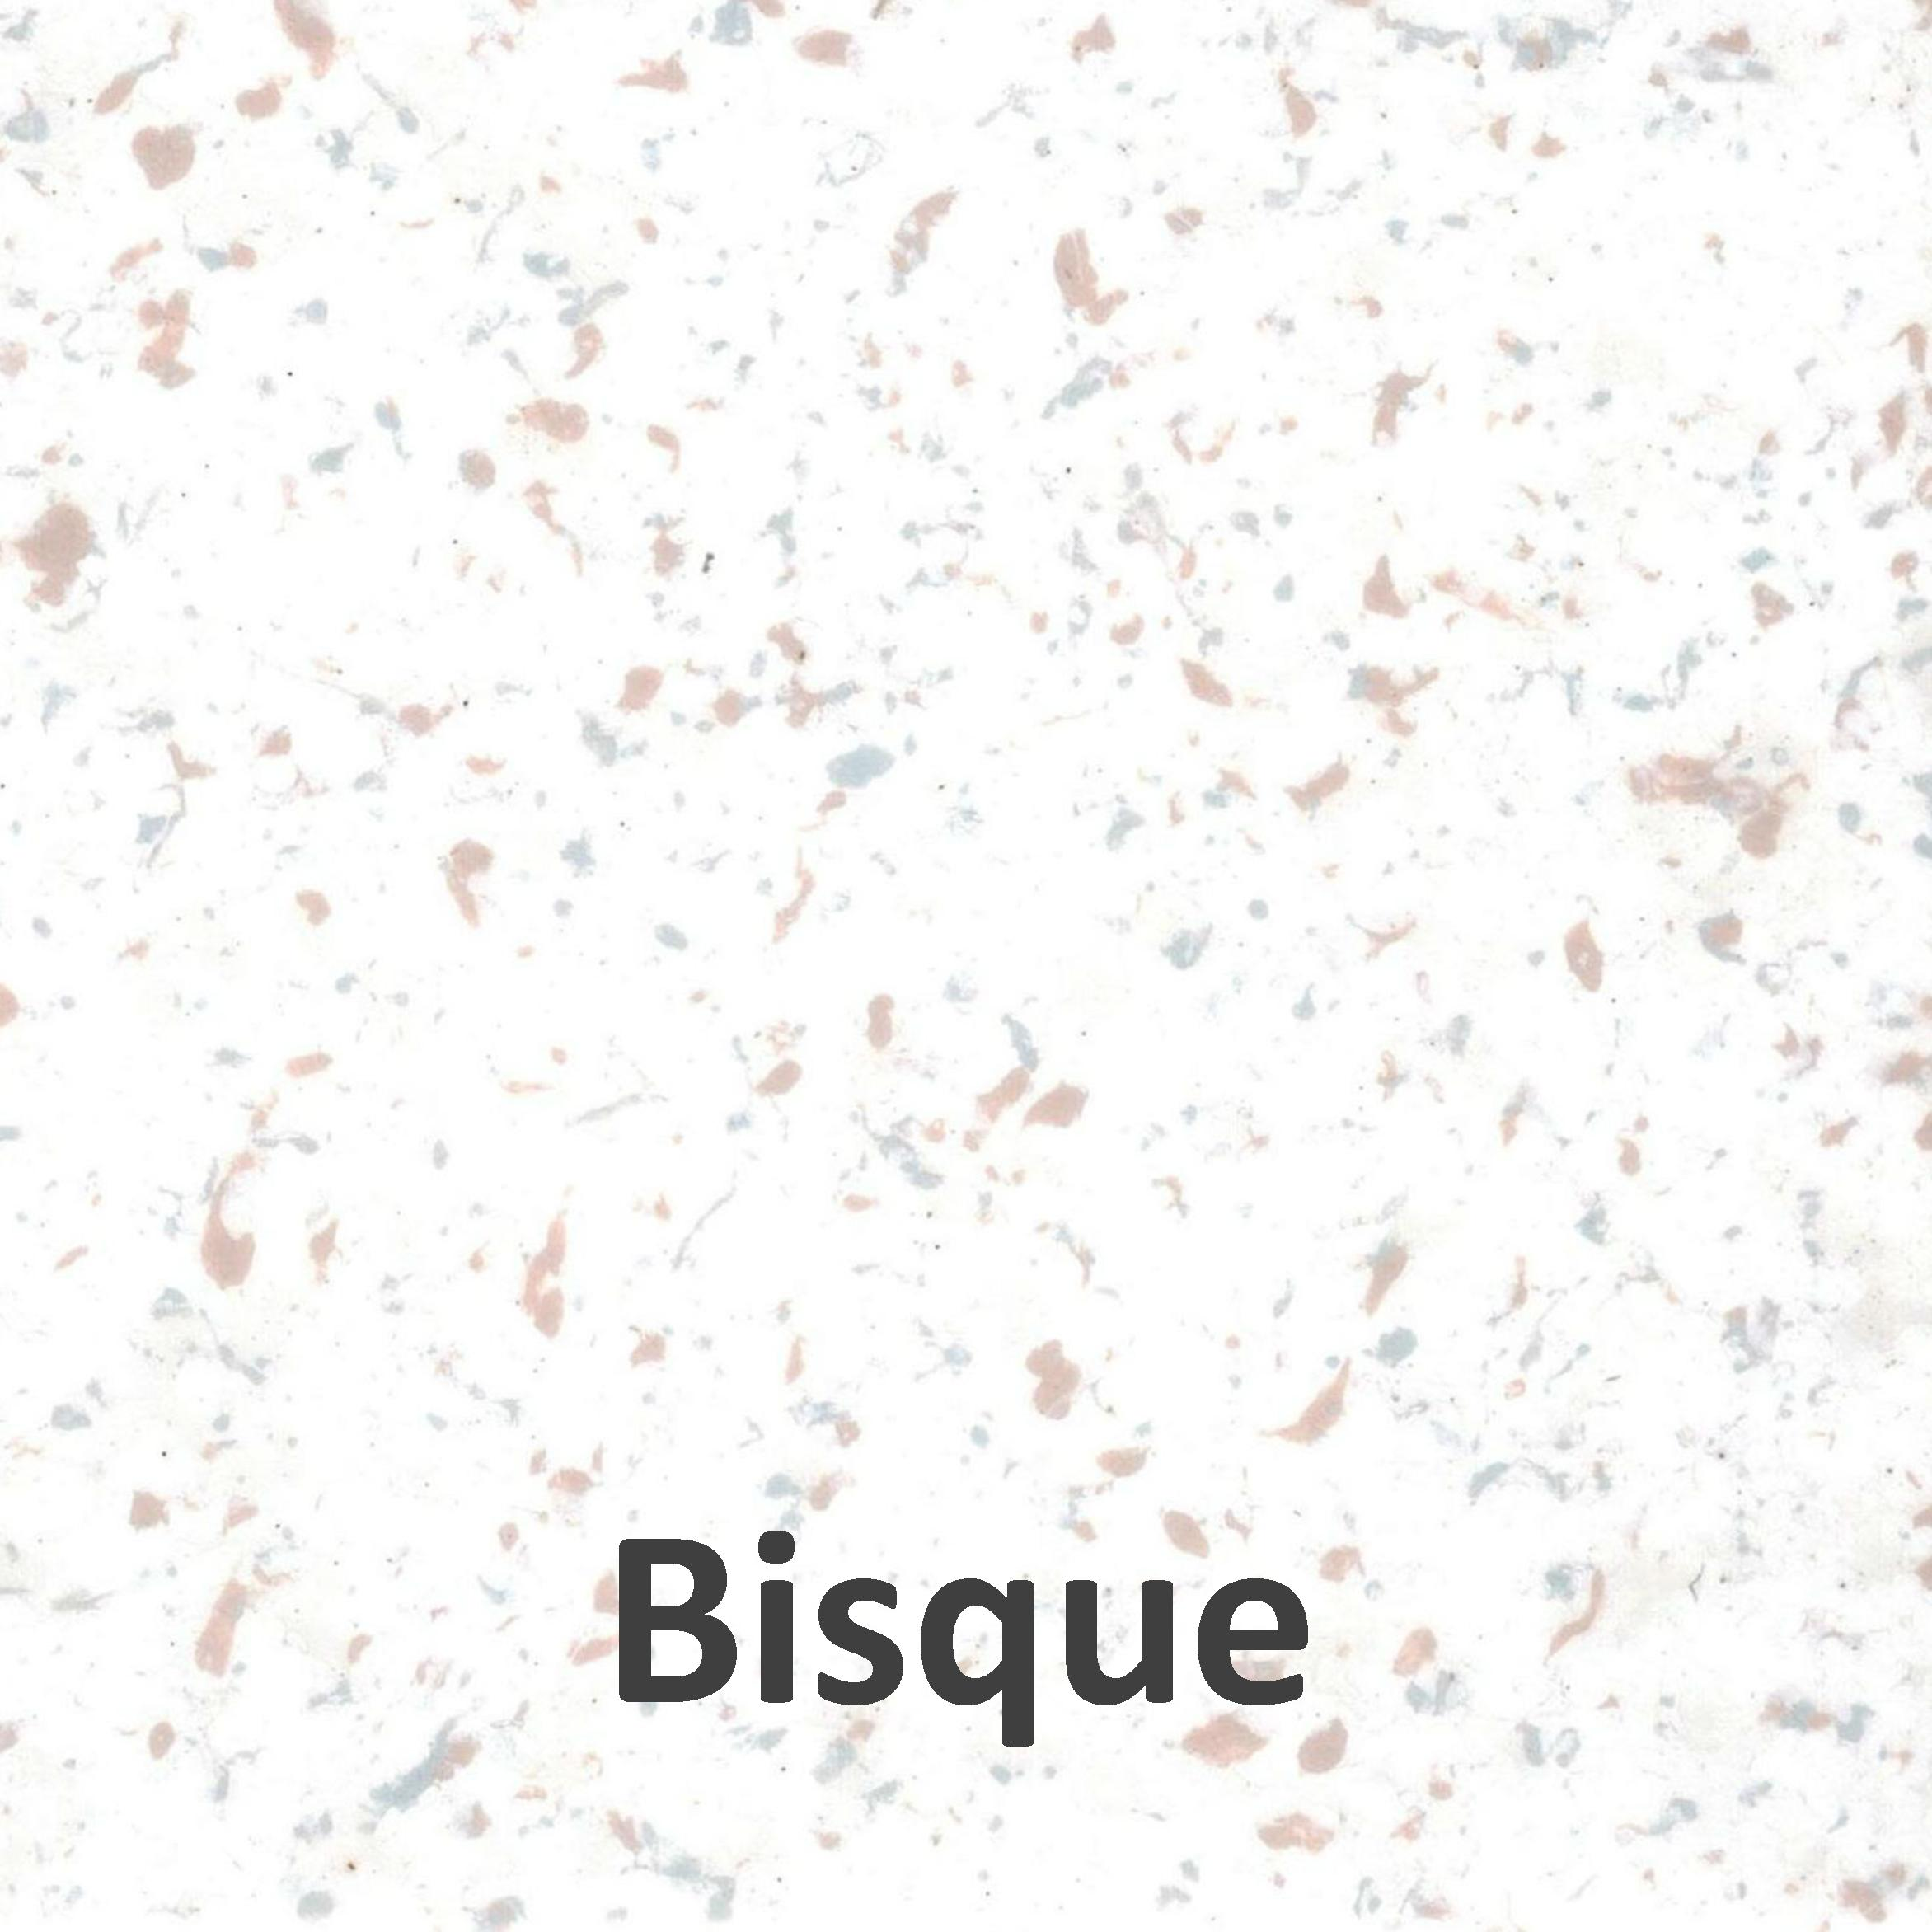 bisque-label.jpg